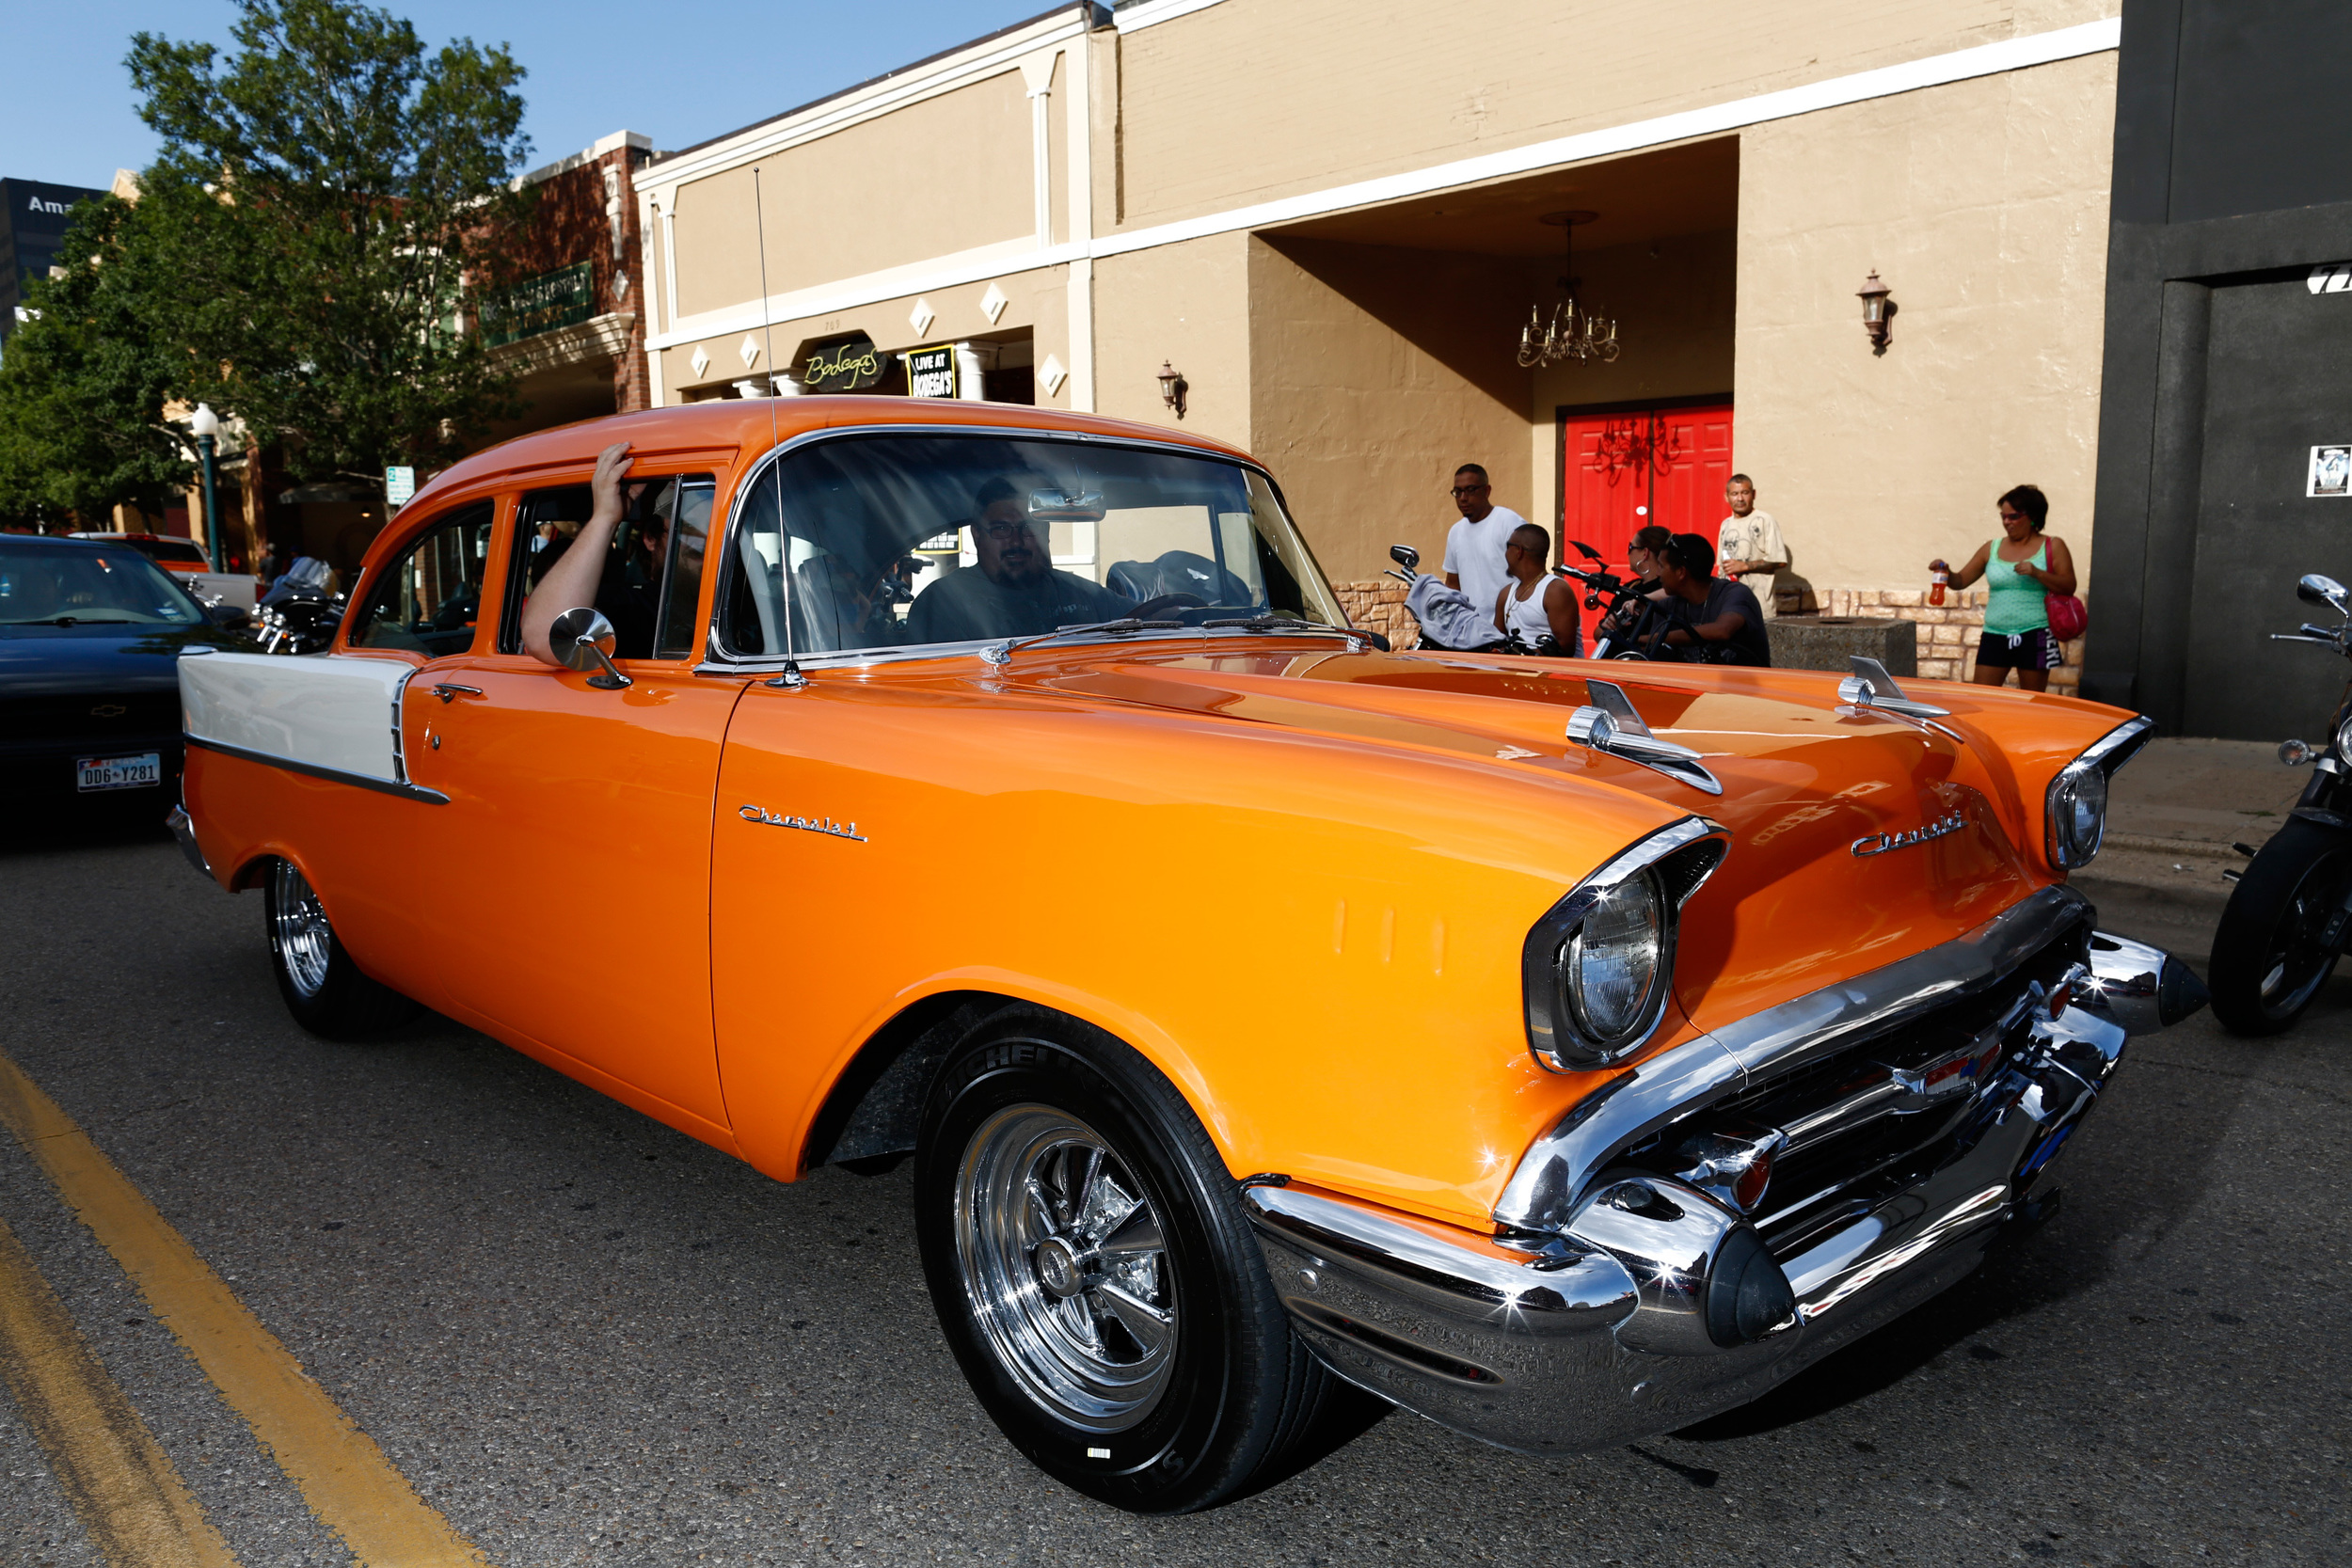 My old friend, Warren, corrected me. This is a '57 210 Single-post Chevy, not an Ol' 55. My bad.